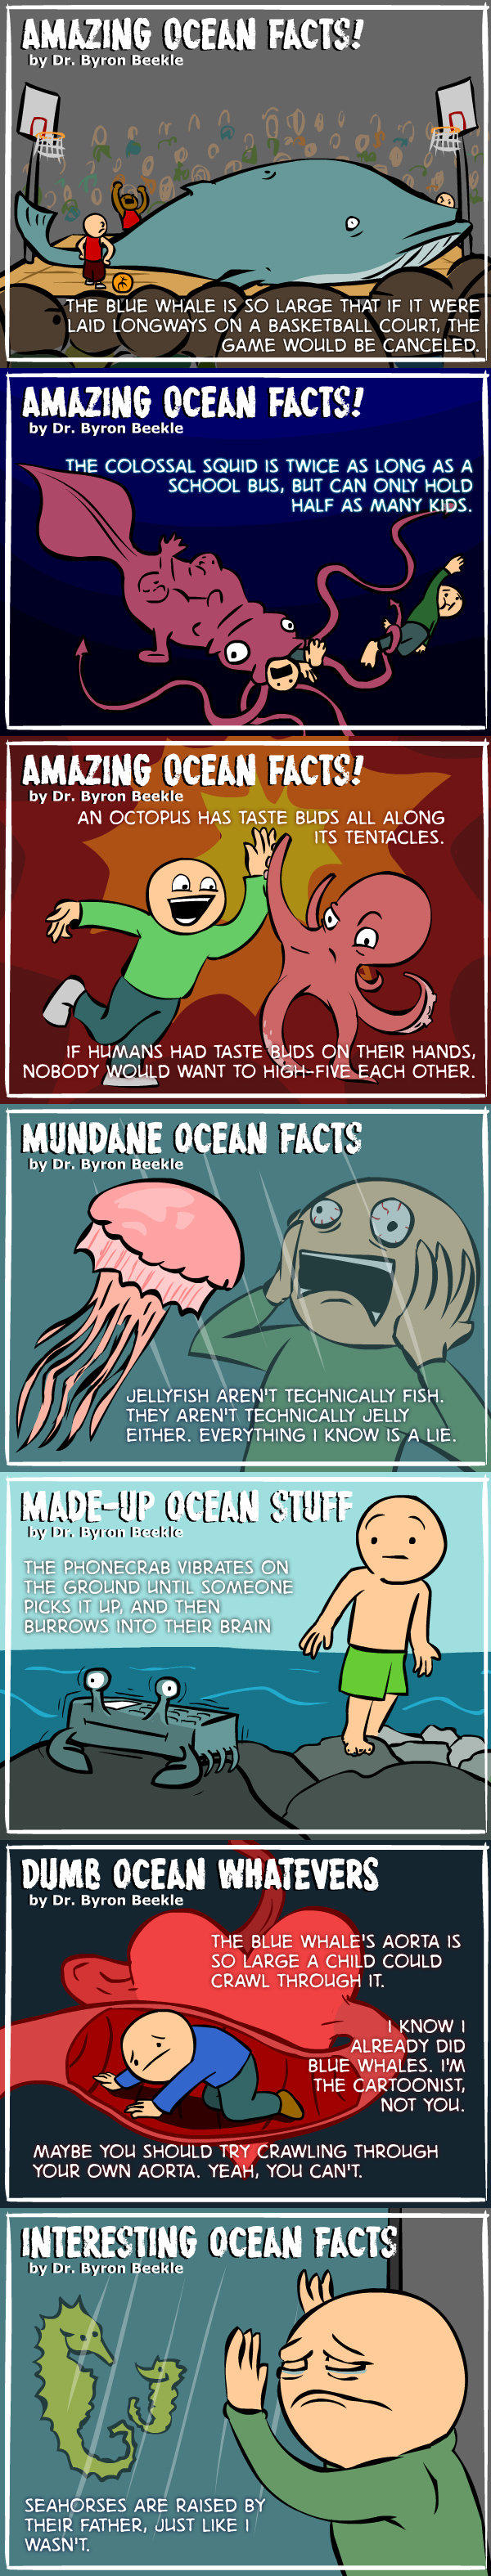 Real Ocean Facts. Broaden your minds, motherf&*@%s. -   Misc